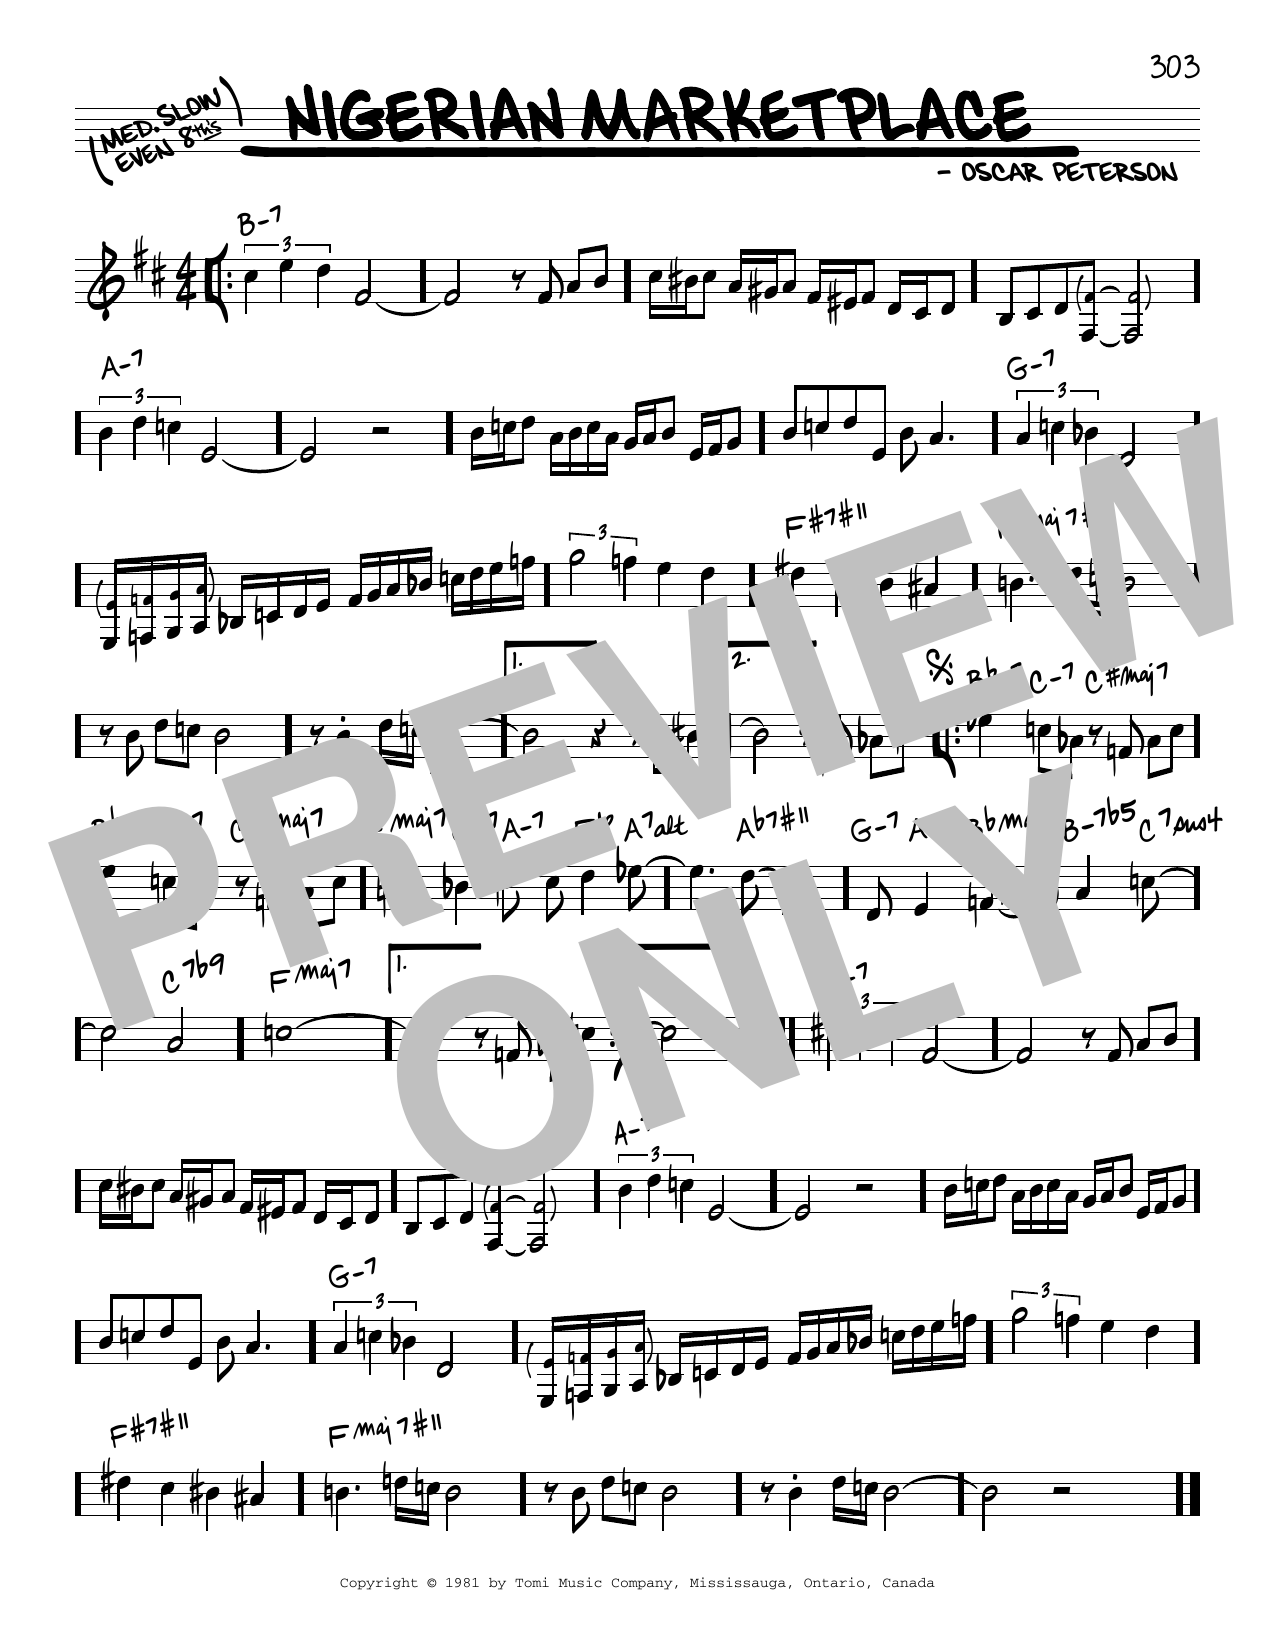 Oscar Peterson Nigerian Marketplace sheet music notes and chords. Download Printable PDF.